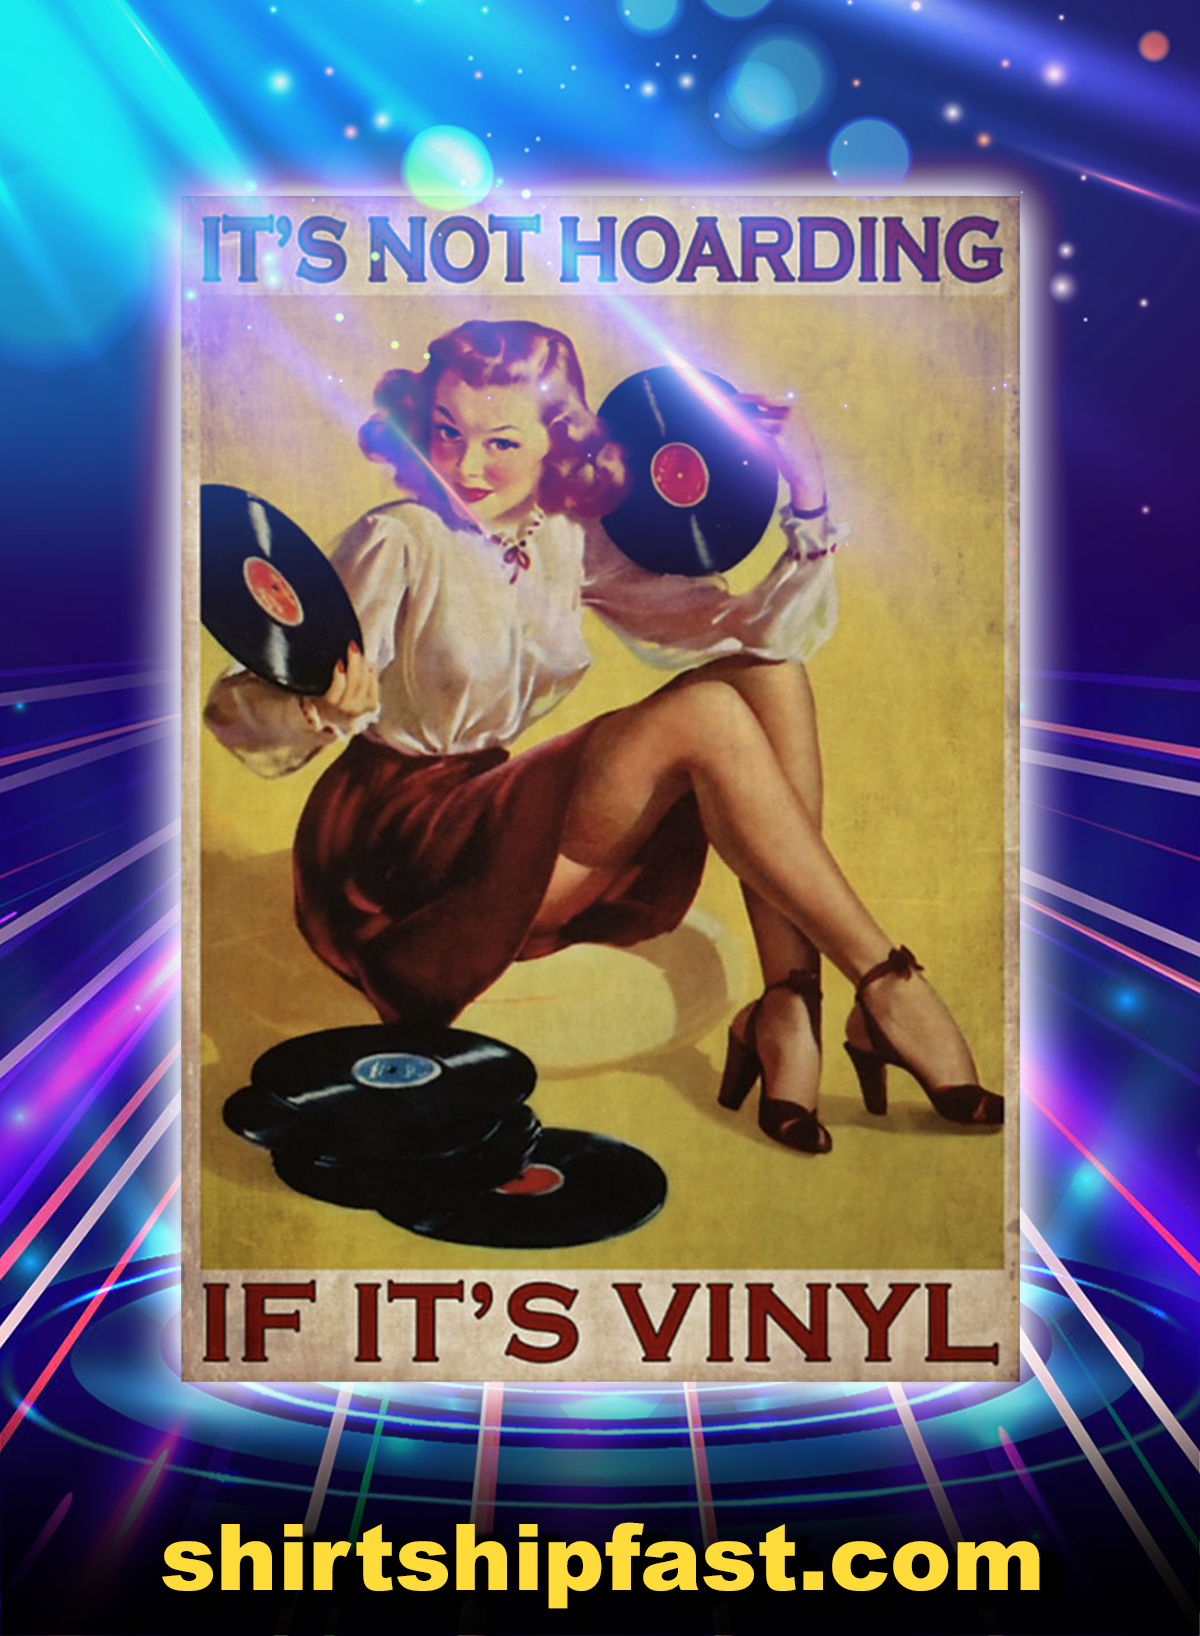 Blonde girl It's not hoarding if it's vinyl poster - A1